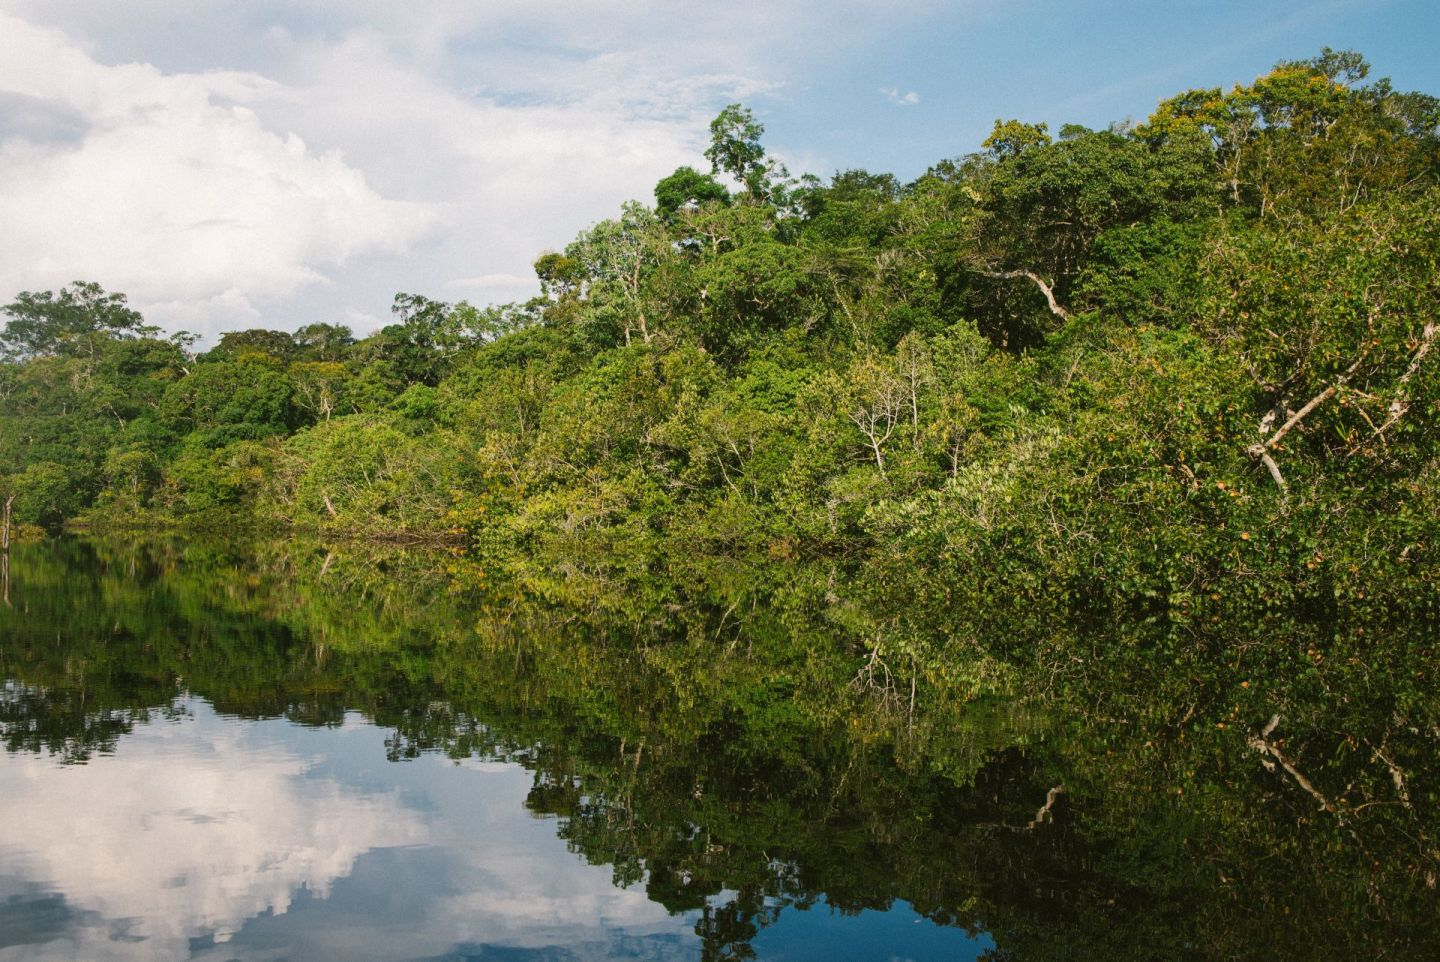 Top travel destinations for 2020: Amazon rainforest, Brazil